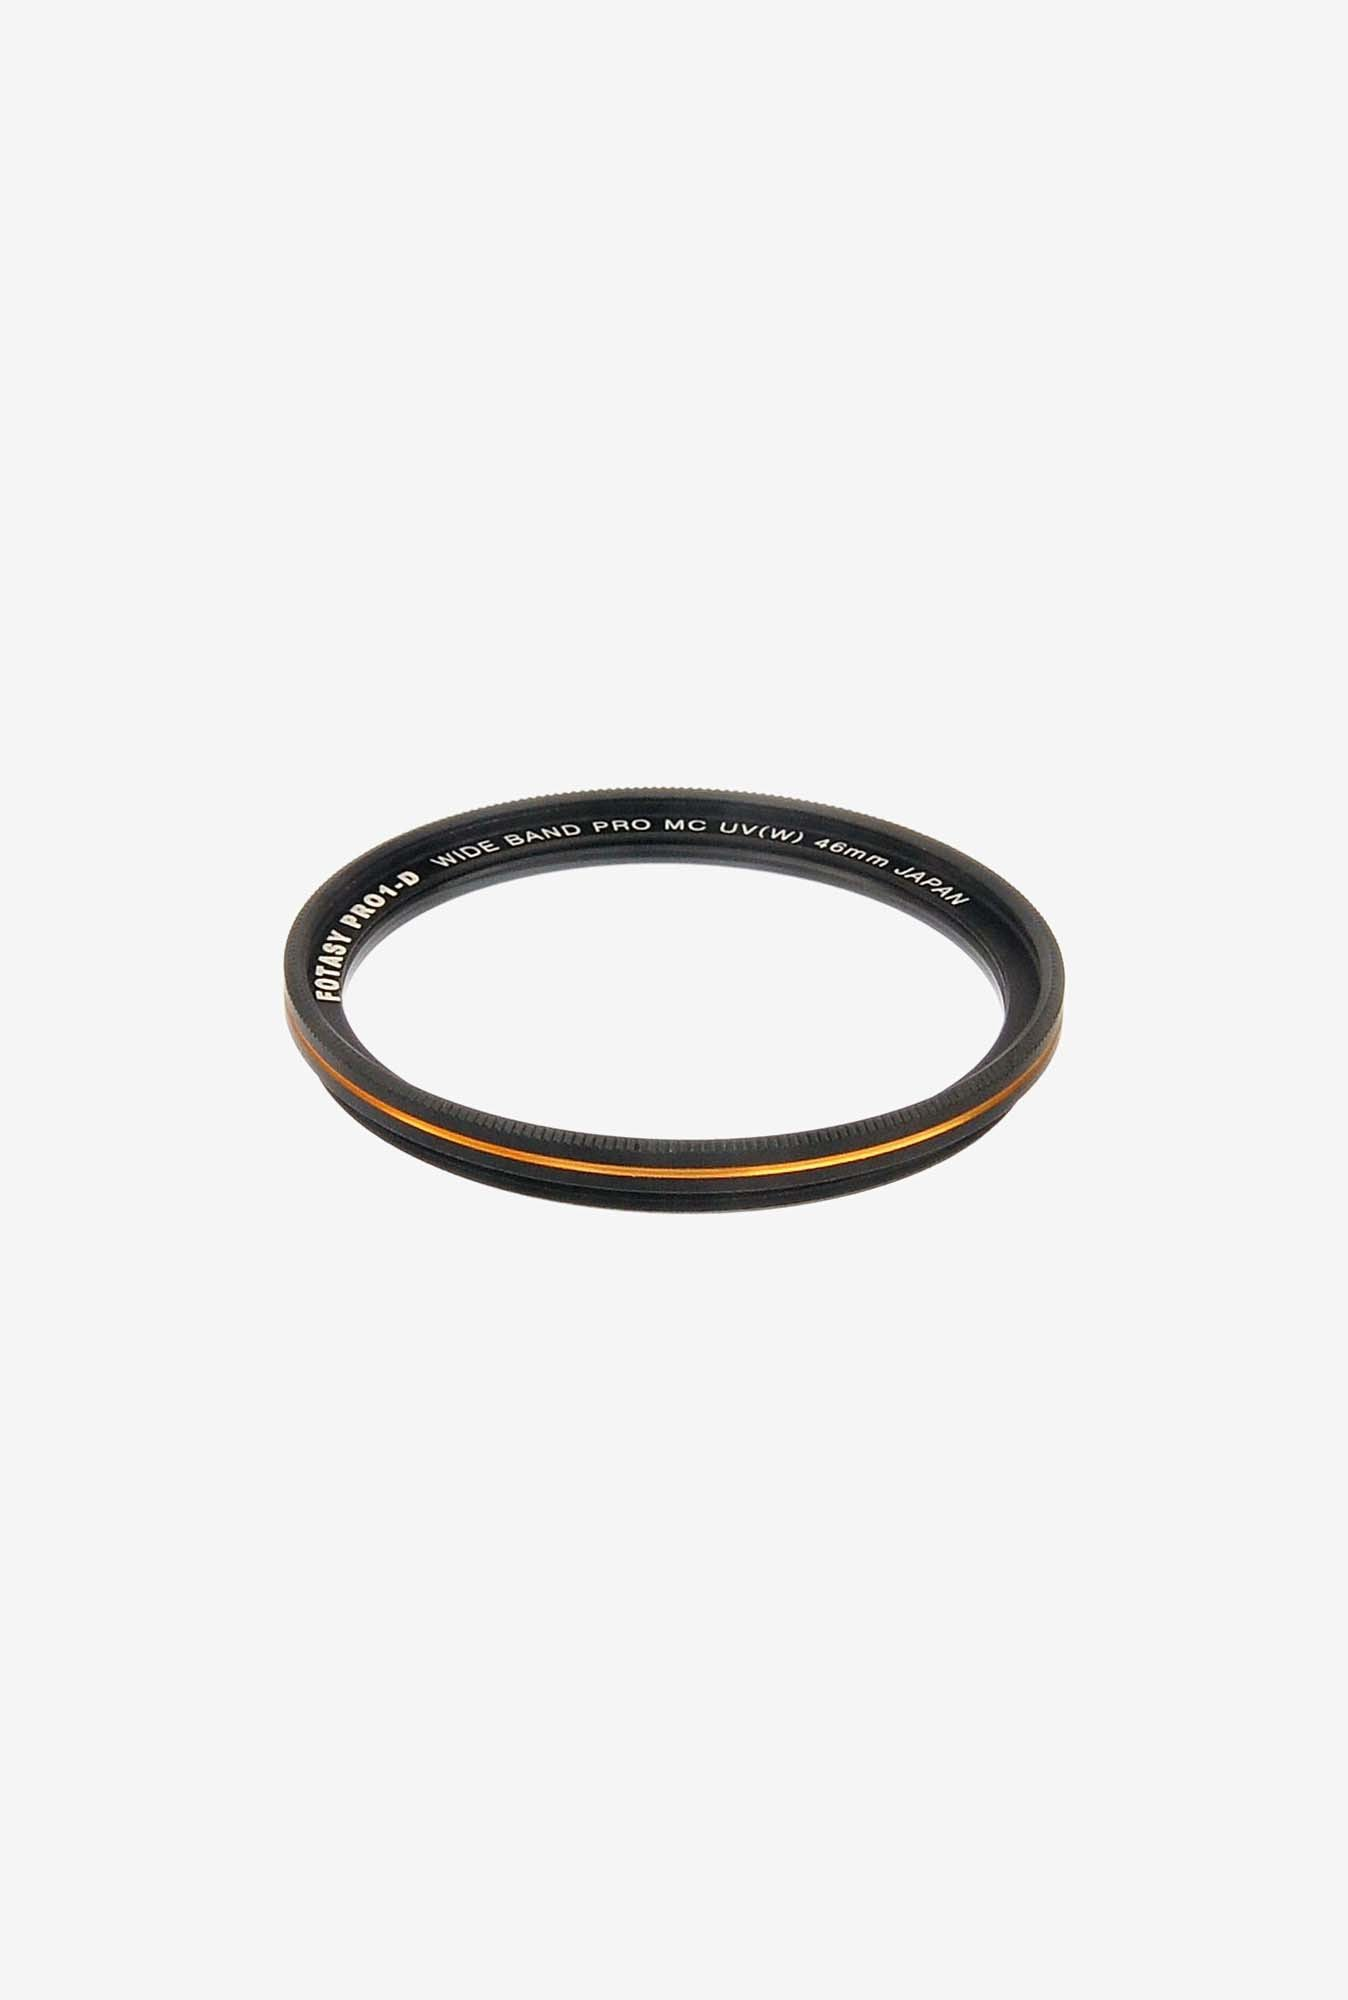 Fotasy MRCUV 46 mm Multi-Coated Filters (Black)